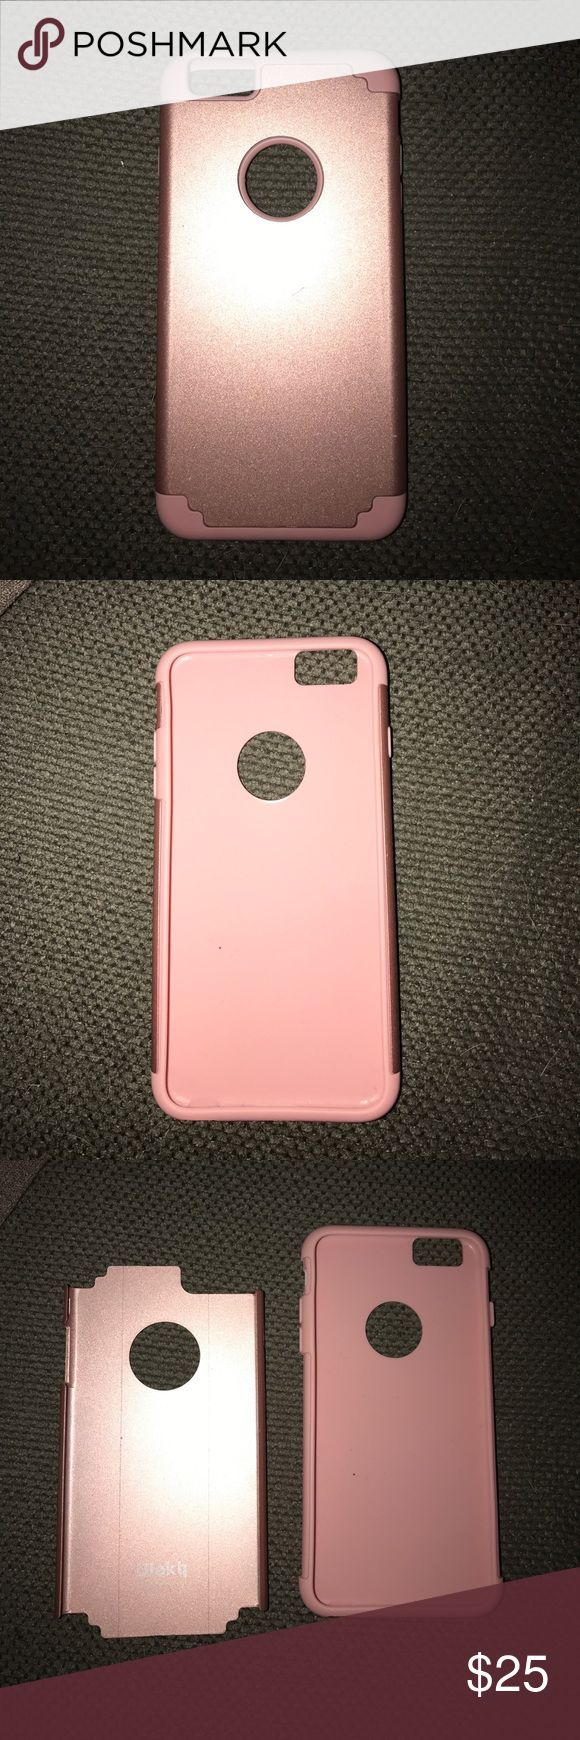 Pink/ Rose Gold iPhone 6 Plus Case Double layer iPhone 6 plus case, half silicon and half hard plastic Other